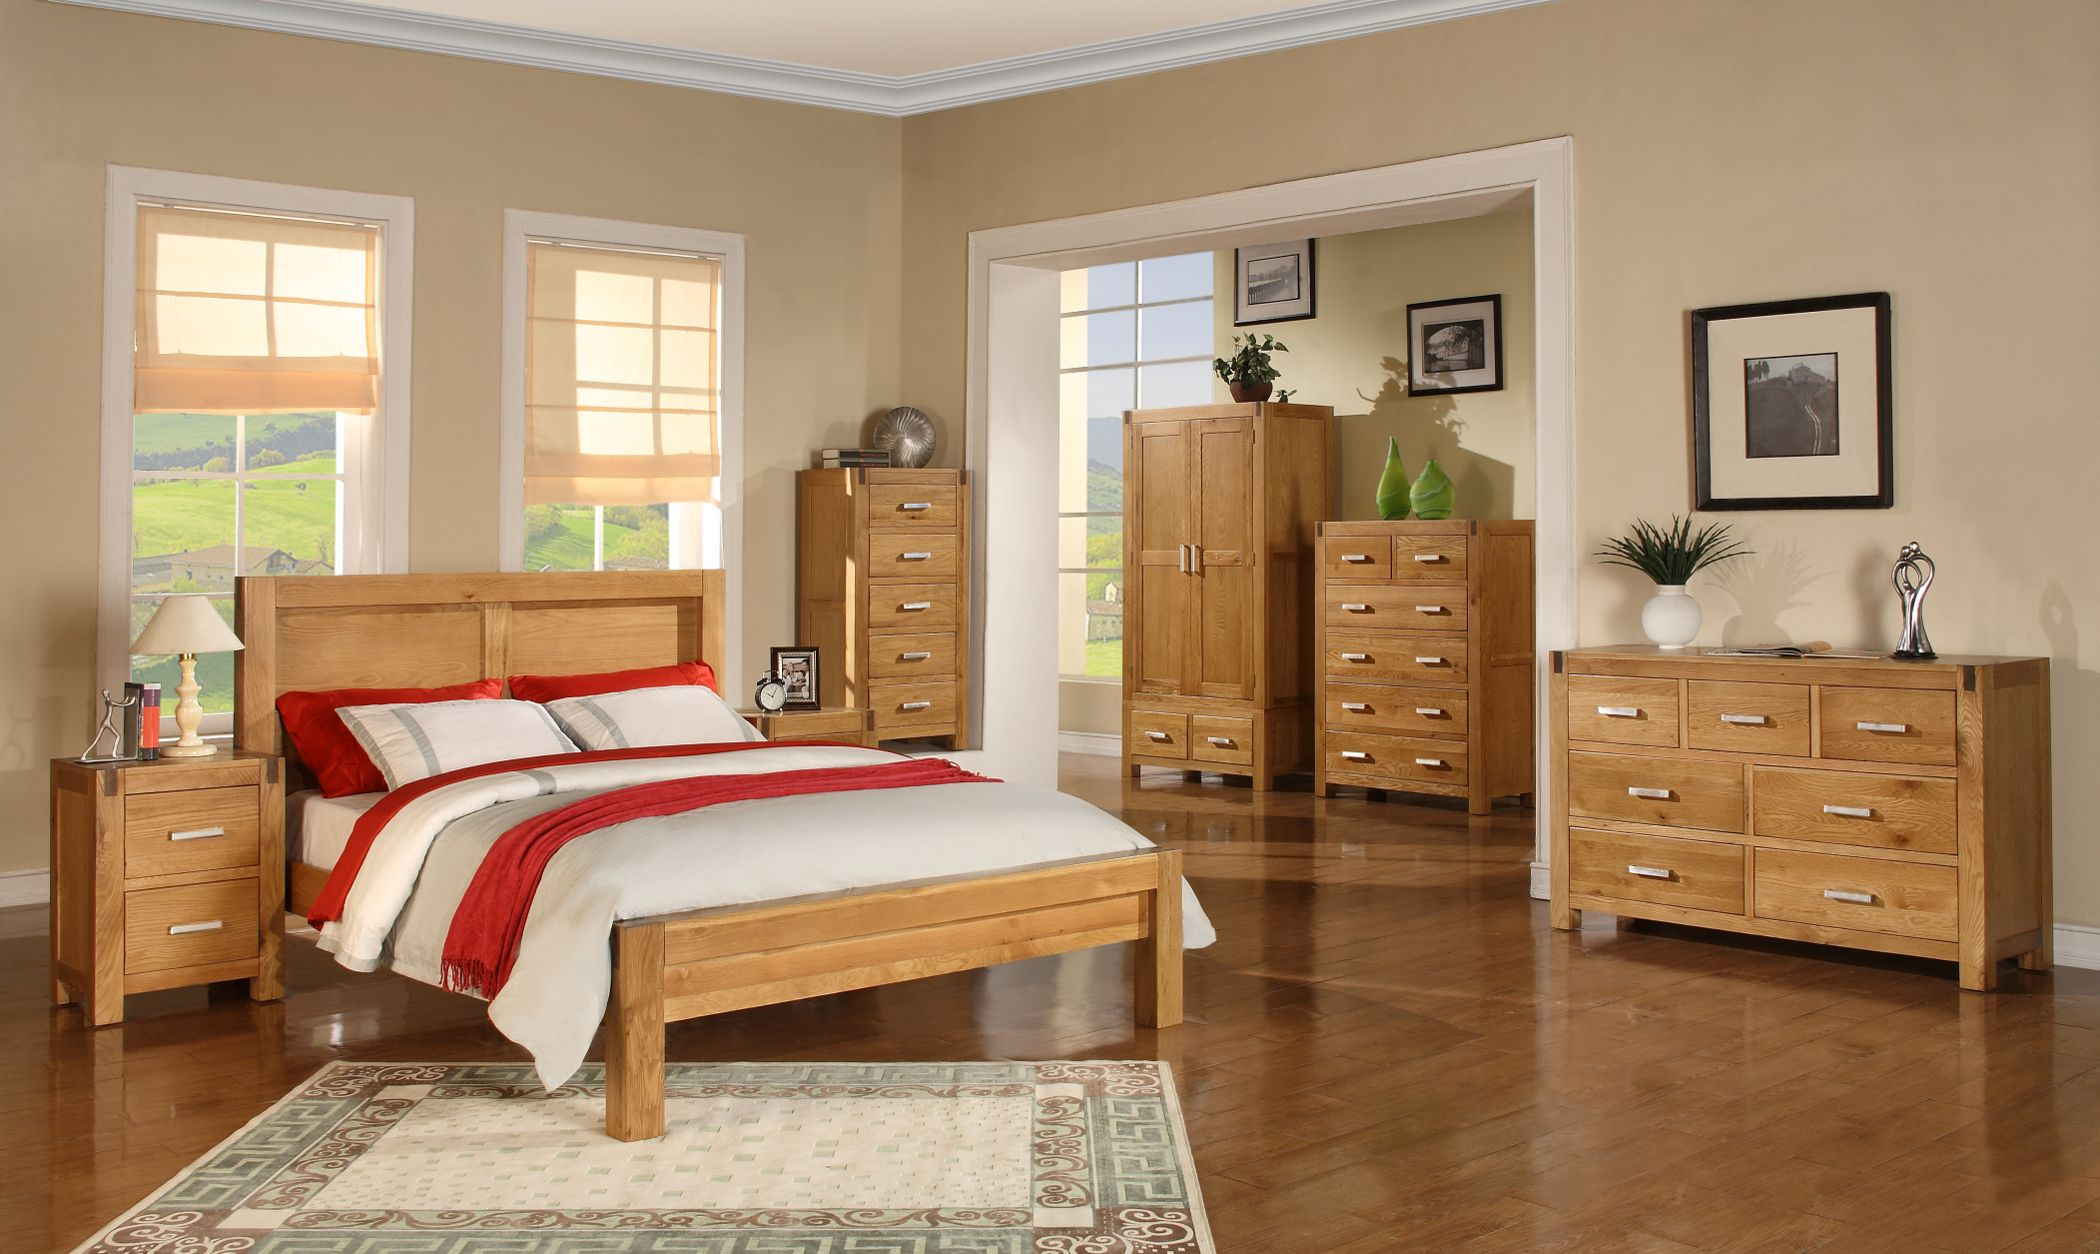 Oak Bedroom Furniture Oak Bedroom Furniture Wood Bedroom Furniture Sets Oak Bedroom Furniture Sets